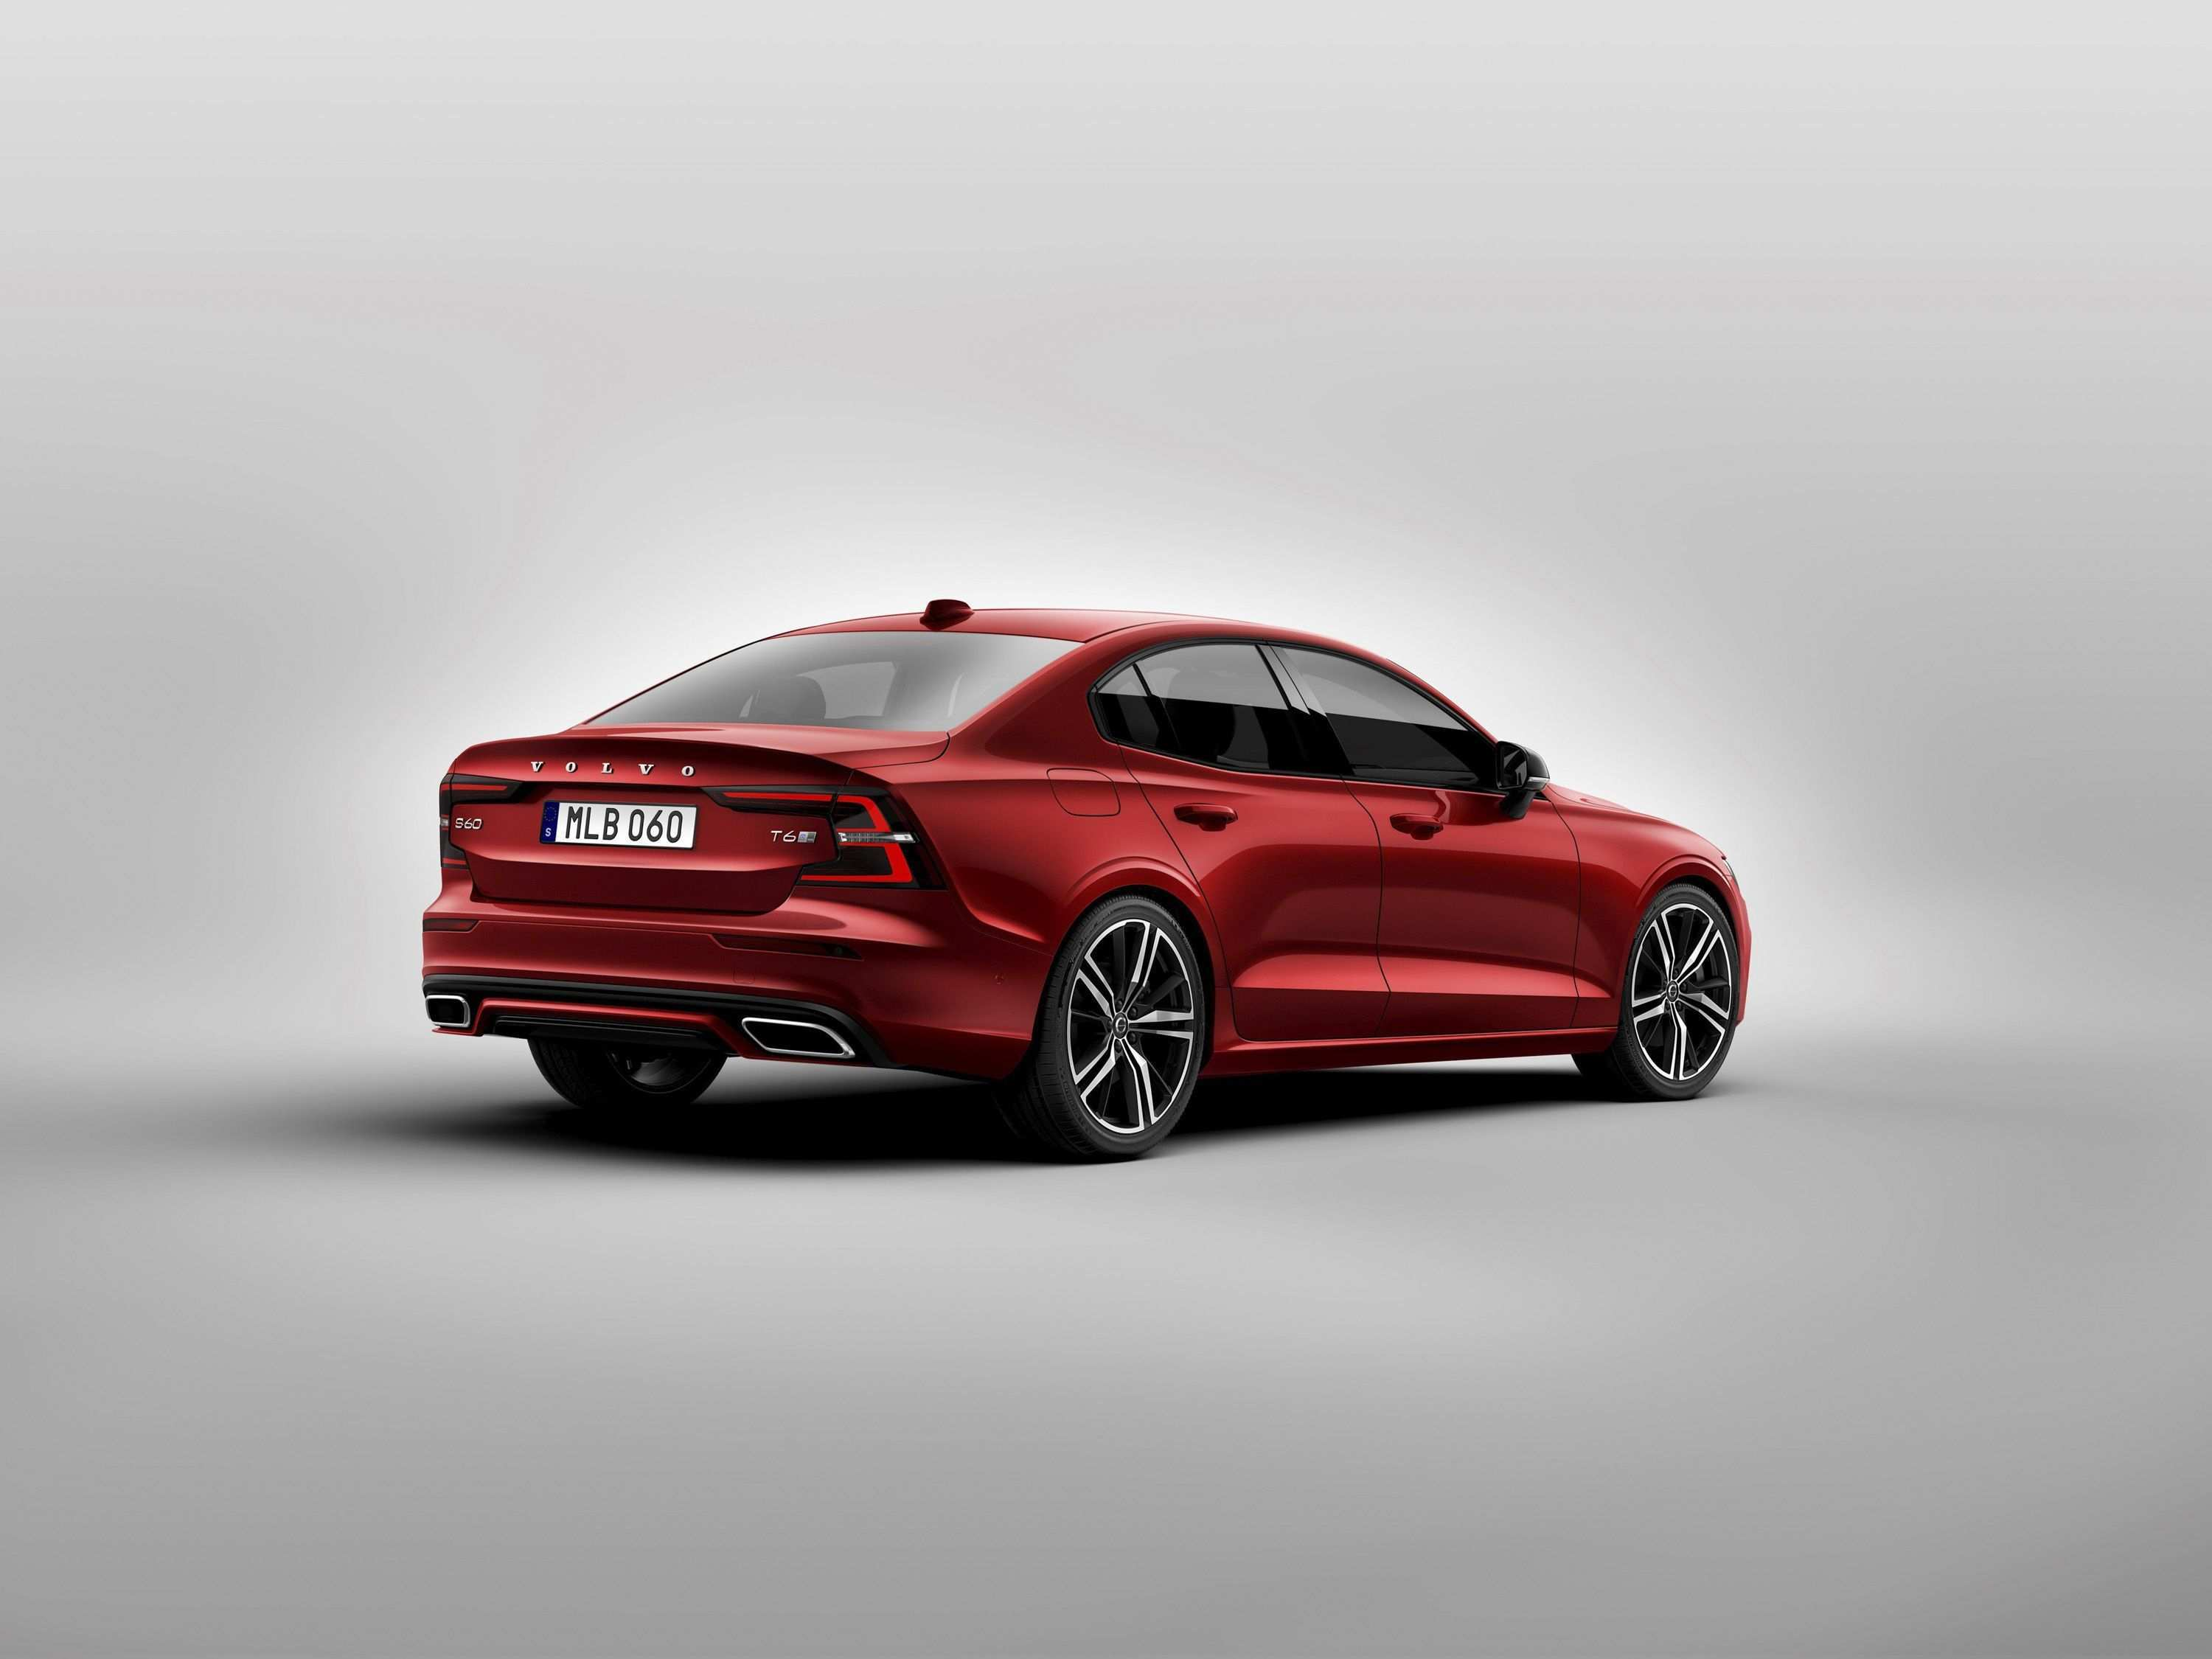 64 Gallery of 2020 Volvo S60 Length New Concept by 2020 Volvo S60 Length